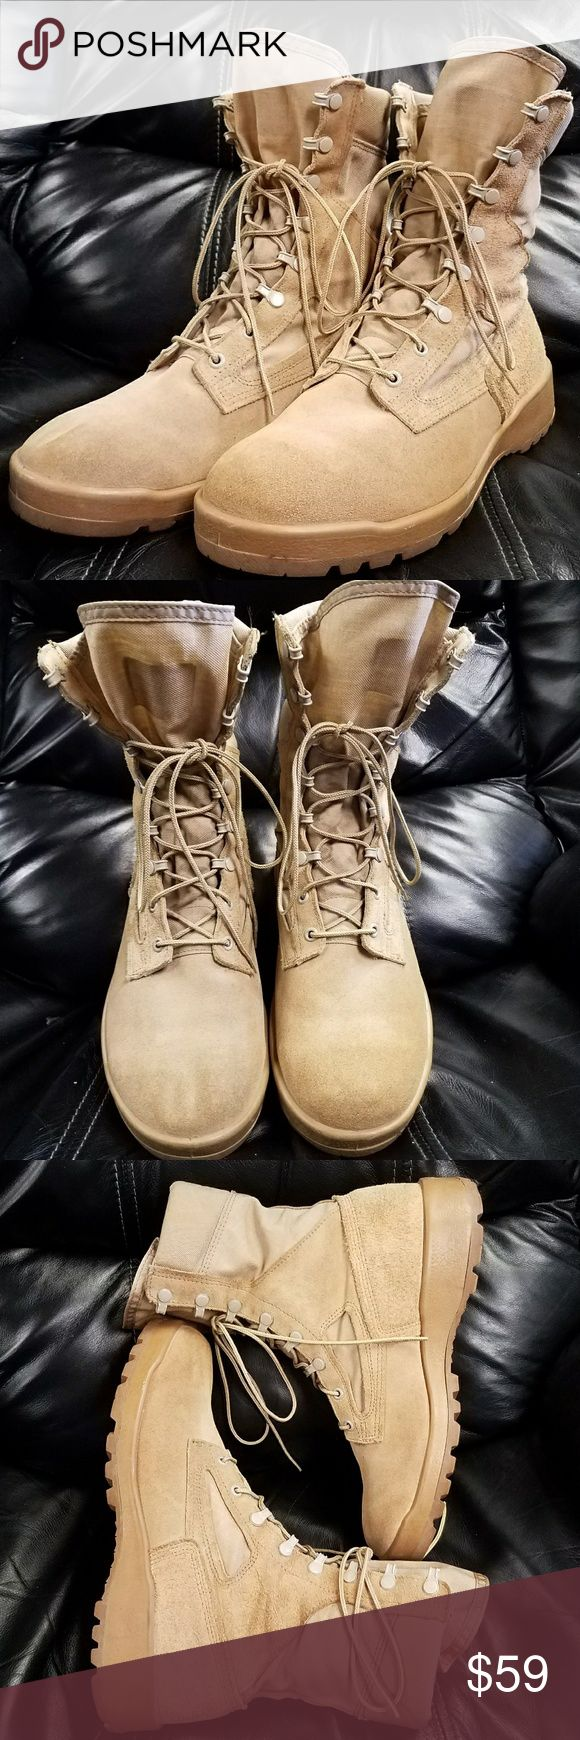 """Belleville 390 DES Hot Weather Desert Combat Boots These lace up tan military boots are ready for the sand with their leather/canvas combo! The F390 is constructed on a VIBRAM Sierra outsole that features a large lug pattern for all around traction. A Belleville shoe site says about the size: """"Belleville hot weather boots run 1 full size larger than your athletic/running shoe size. If you normally wear a size 10 in athletic shoes, consider ordering a size 9."""" See the pics for the good…"""